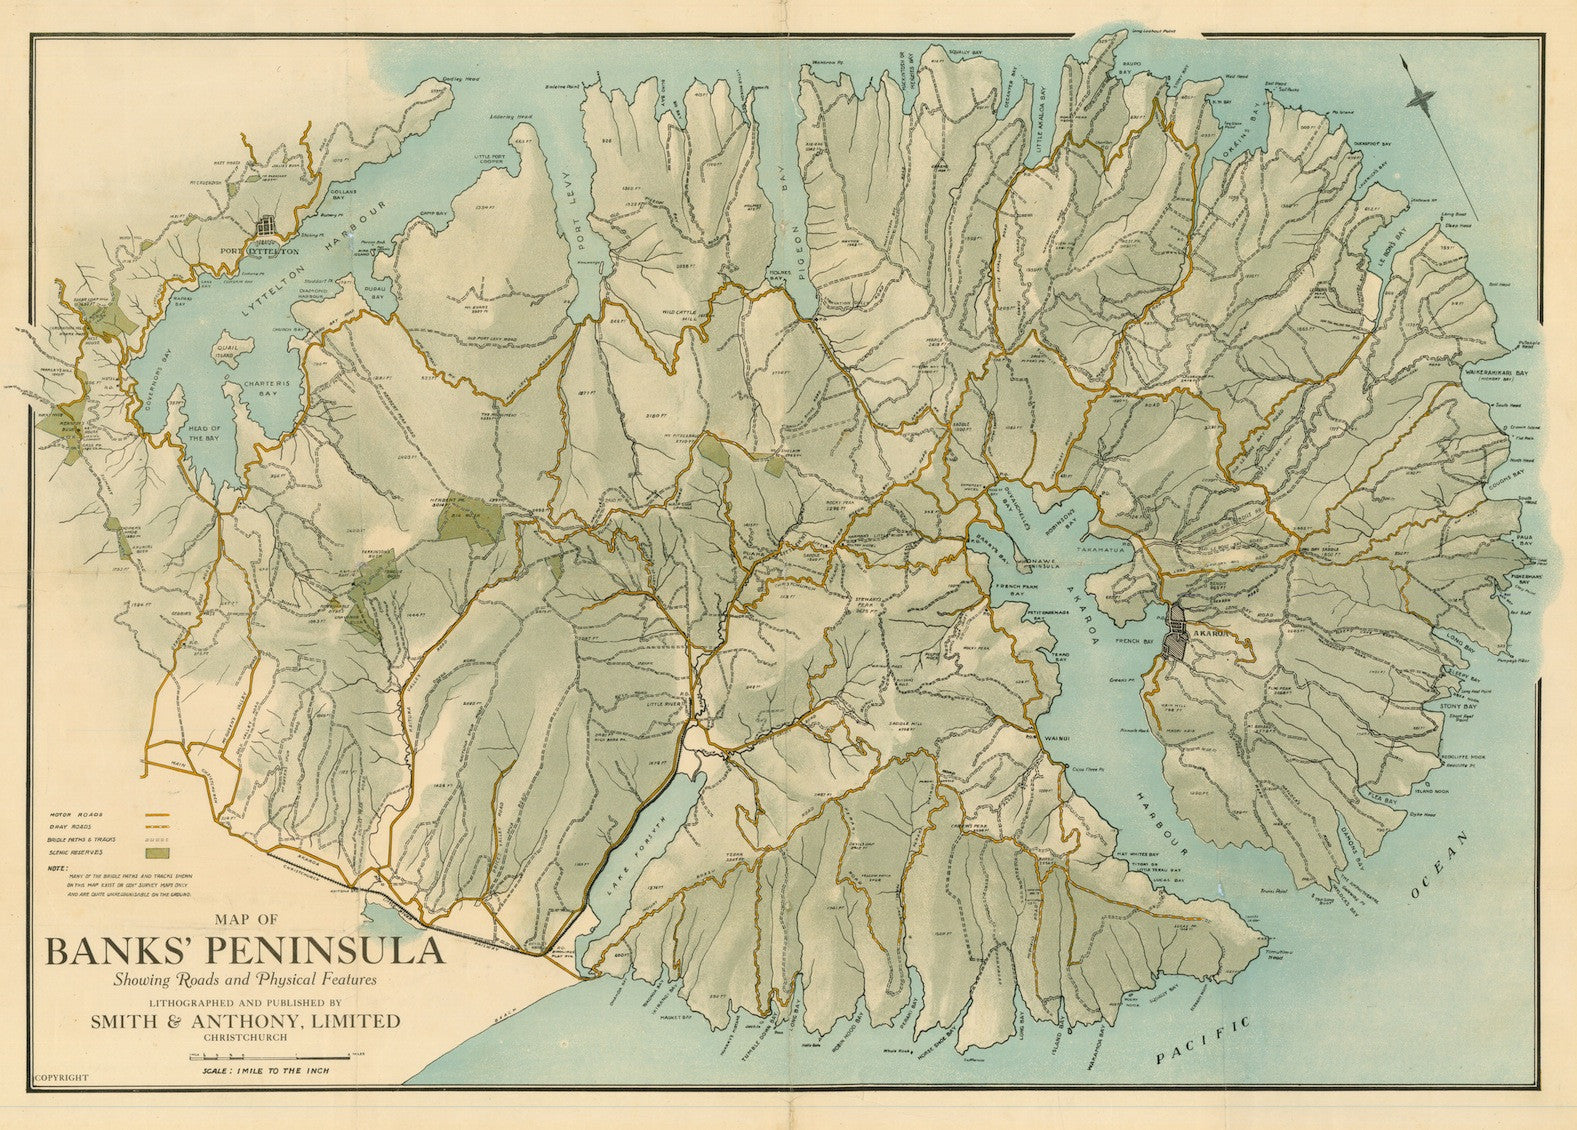 Map of Banks Peninsula showing Roads and Physical Features (Reproduction)